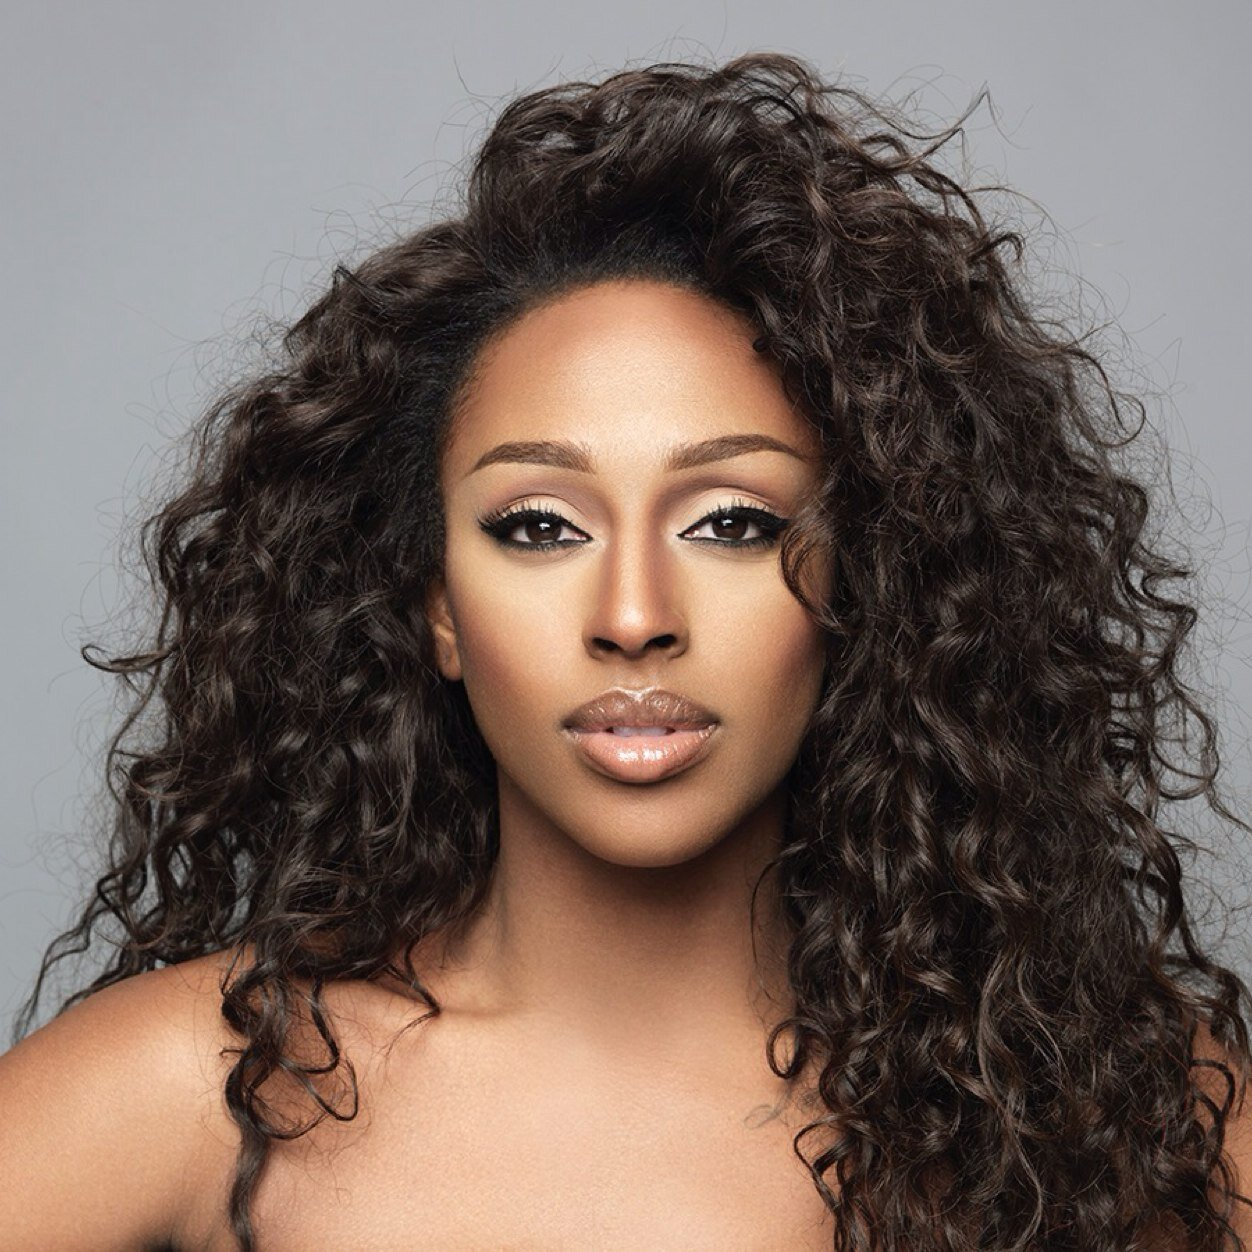 The 29-year old daughter of father (?) and mother Melissa Bell, 163 cm tall Alexandra Burke in 2018 photo